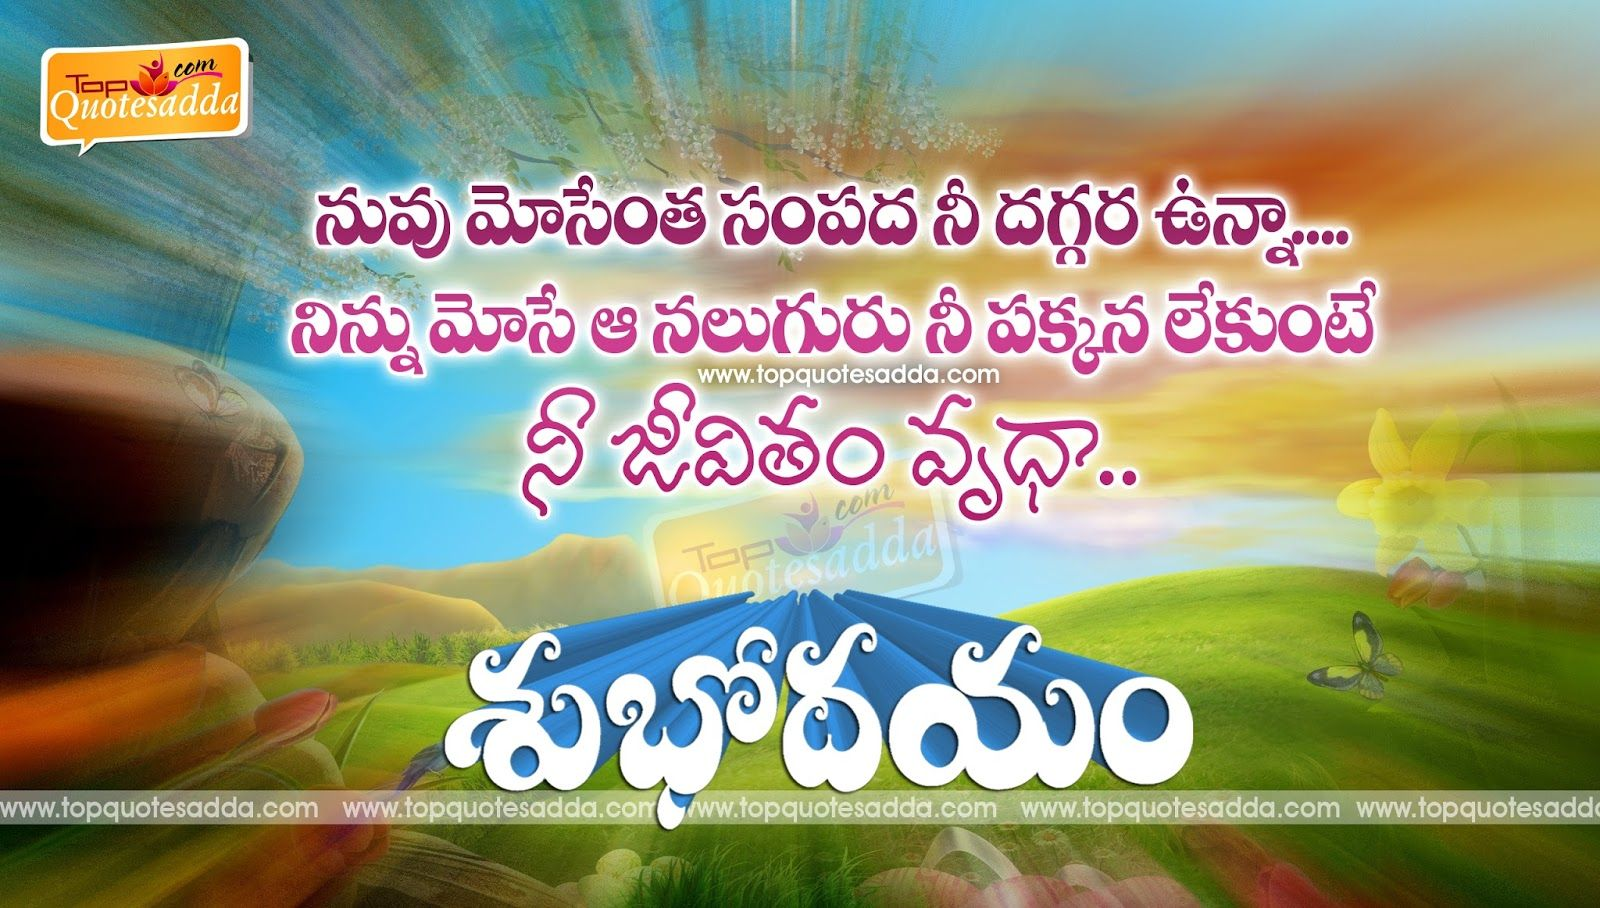 Best Telugu Good Morning Saying Quotes About Human Values Good